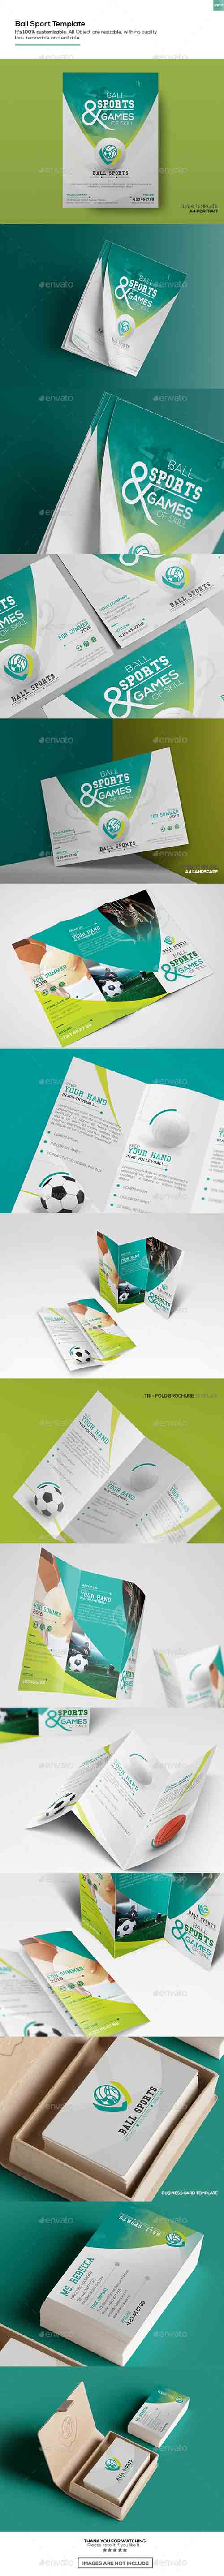 Ball Sport - Set Template 15736437